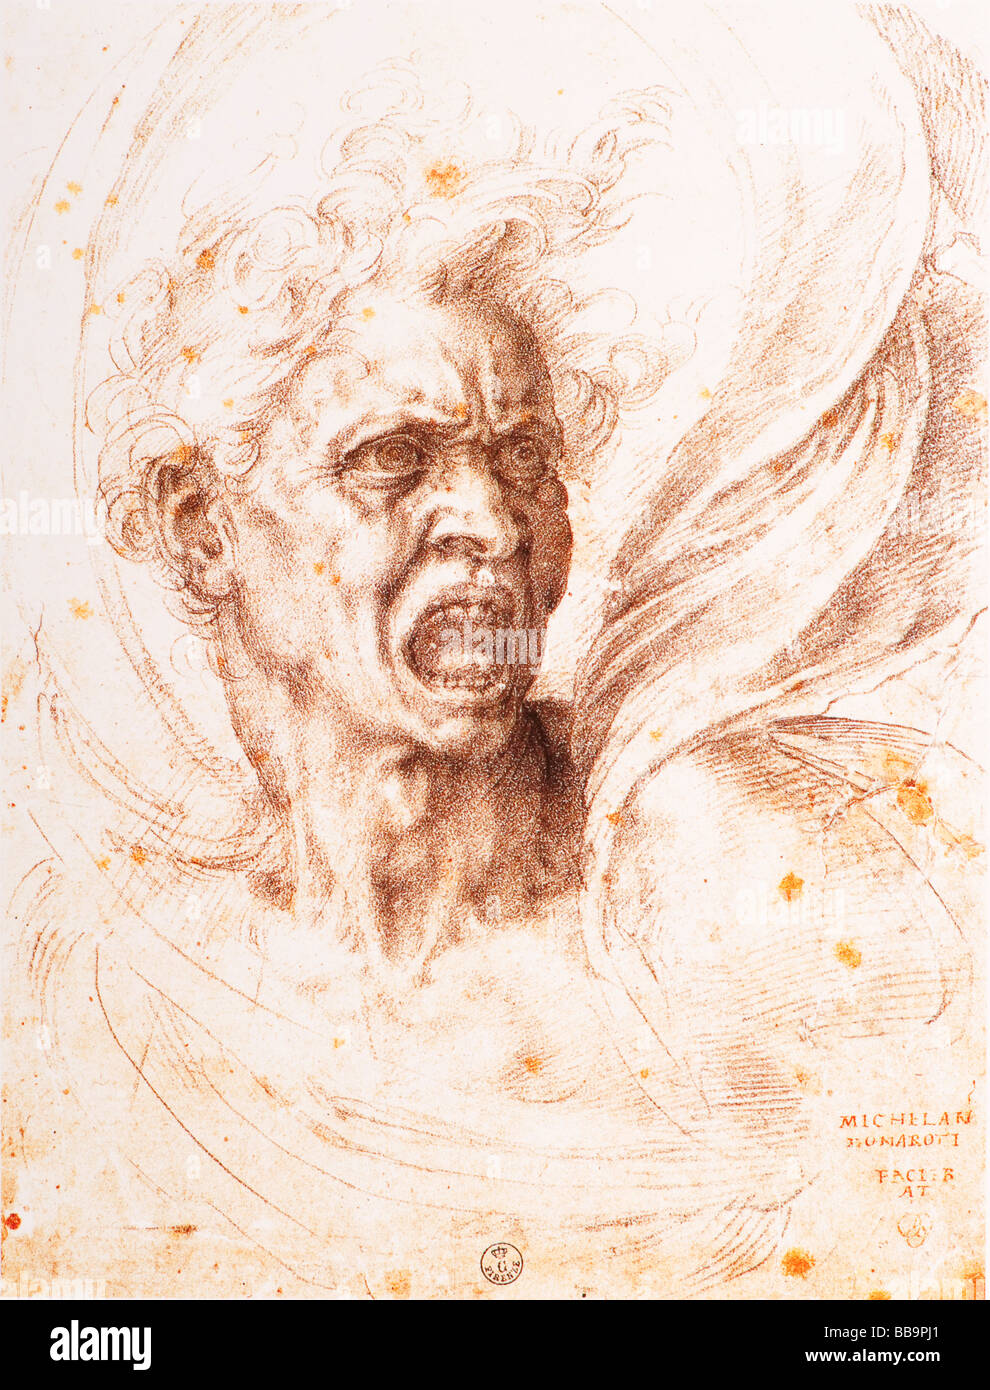 The Damned Soul by Michelangelo 1525 black ink - Stock Image